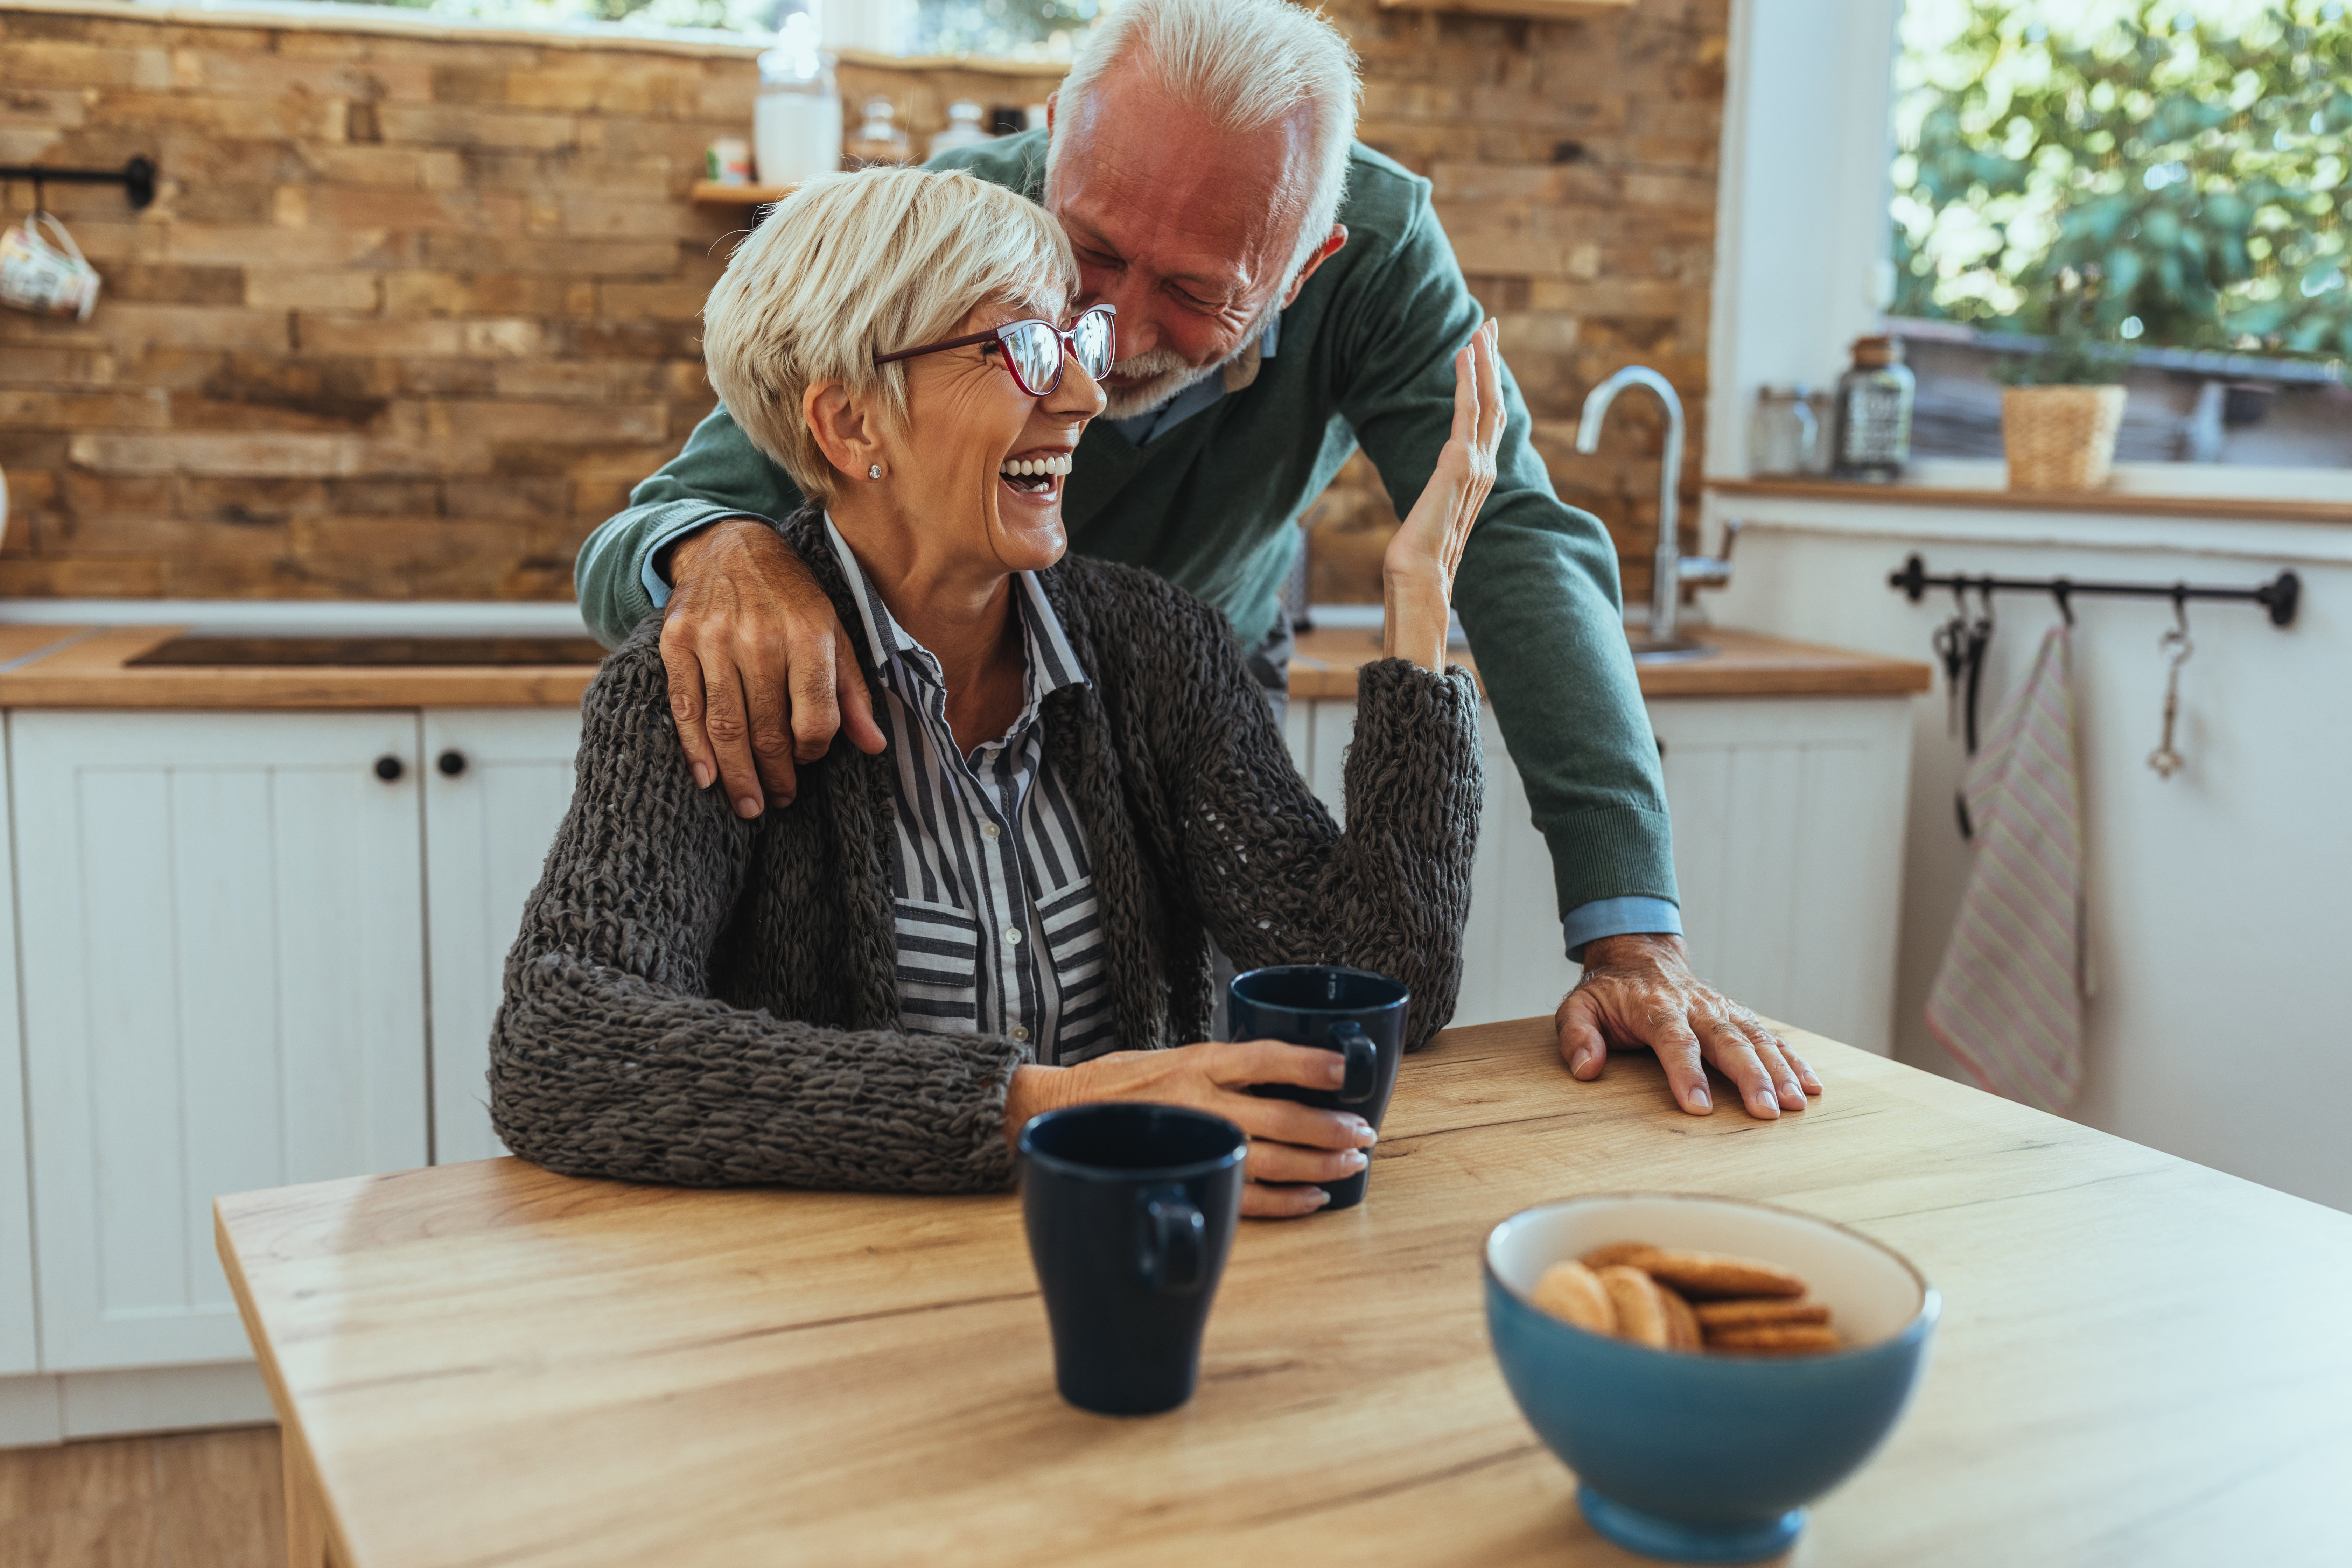 An older couple laughing together | Photo: Shutterstock